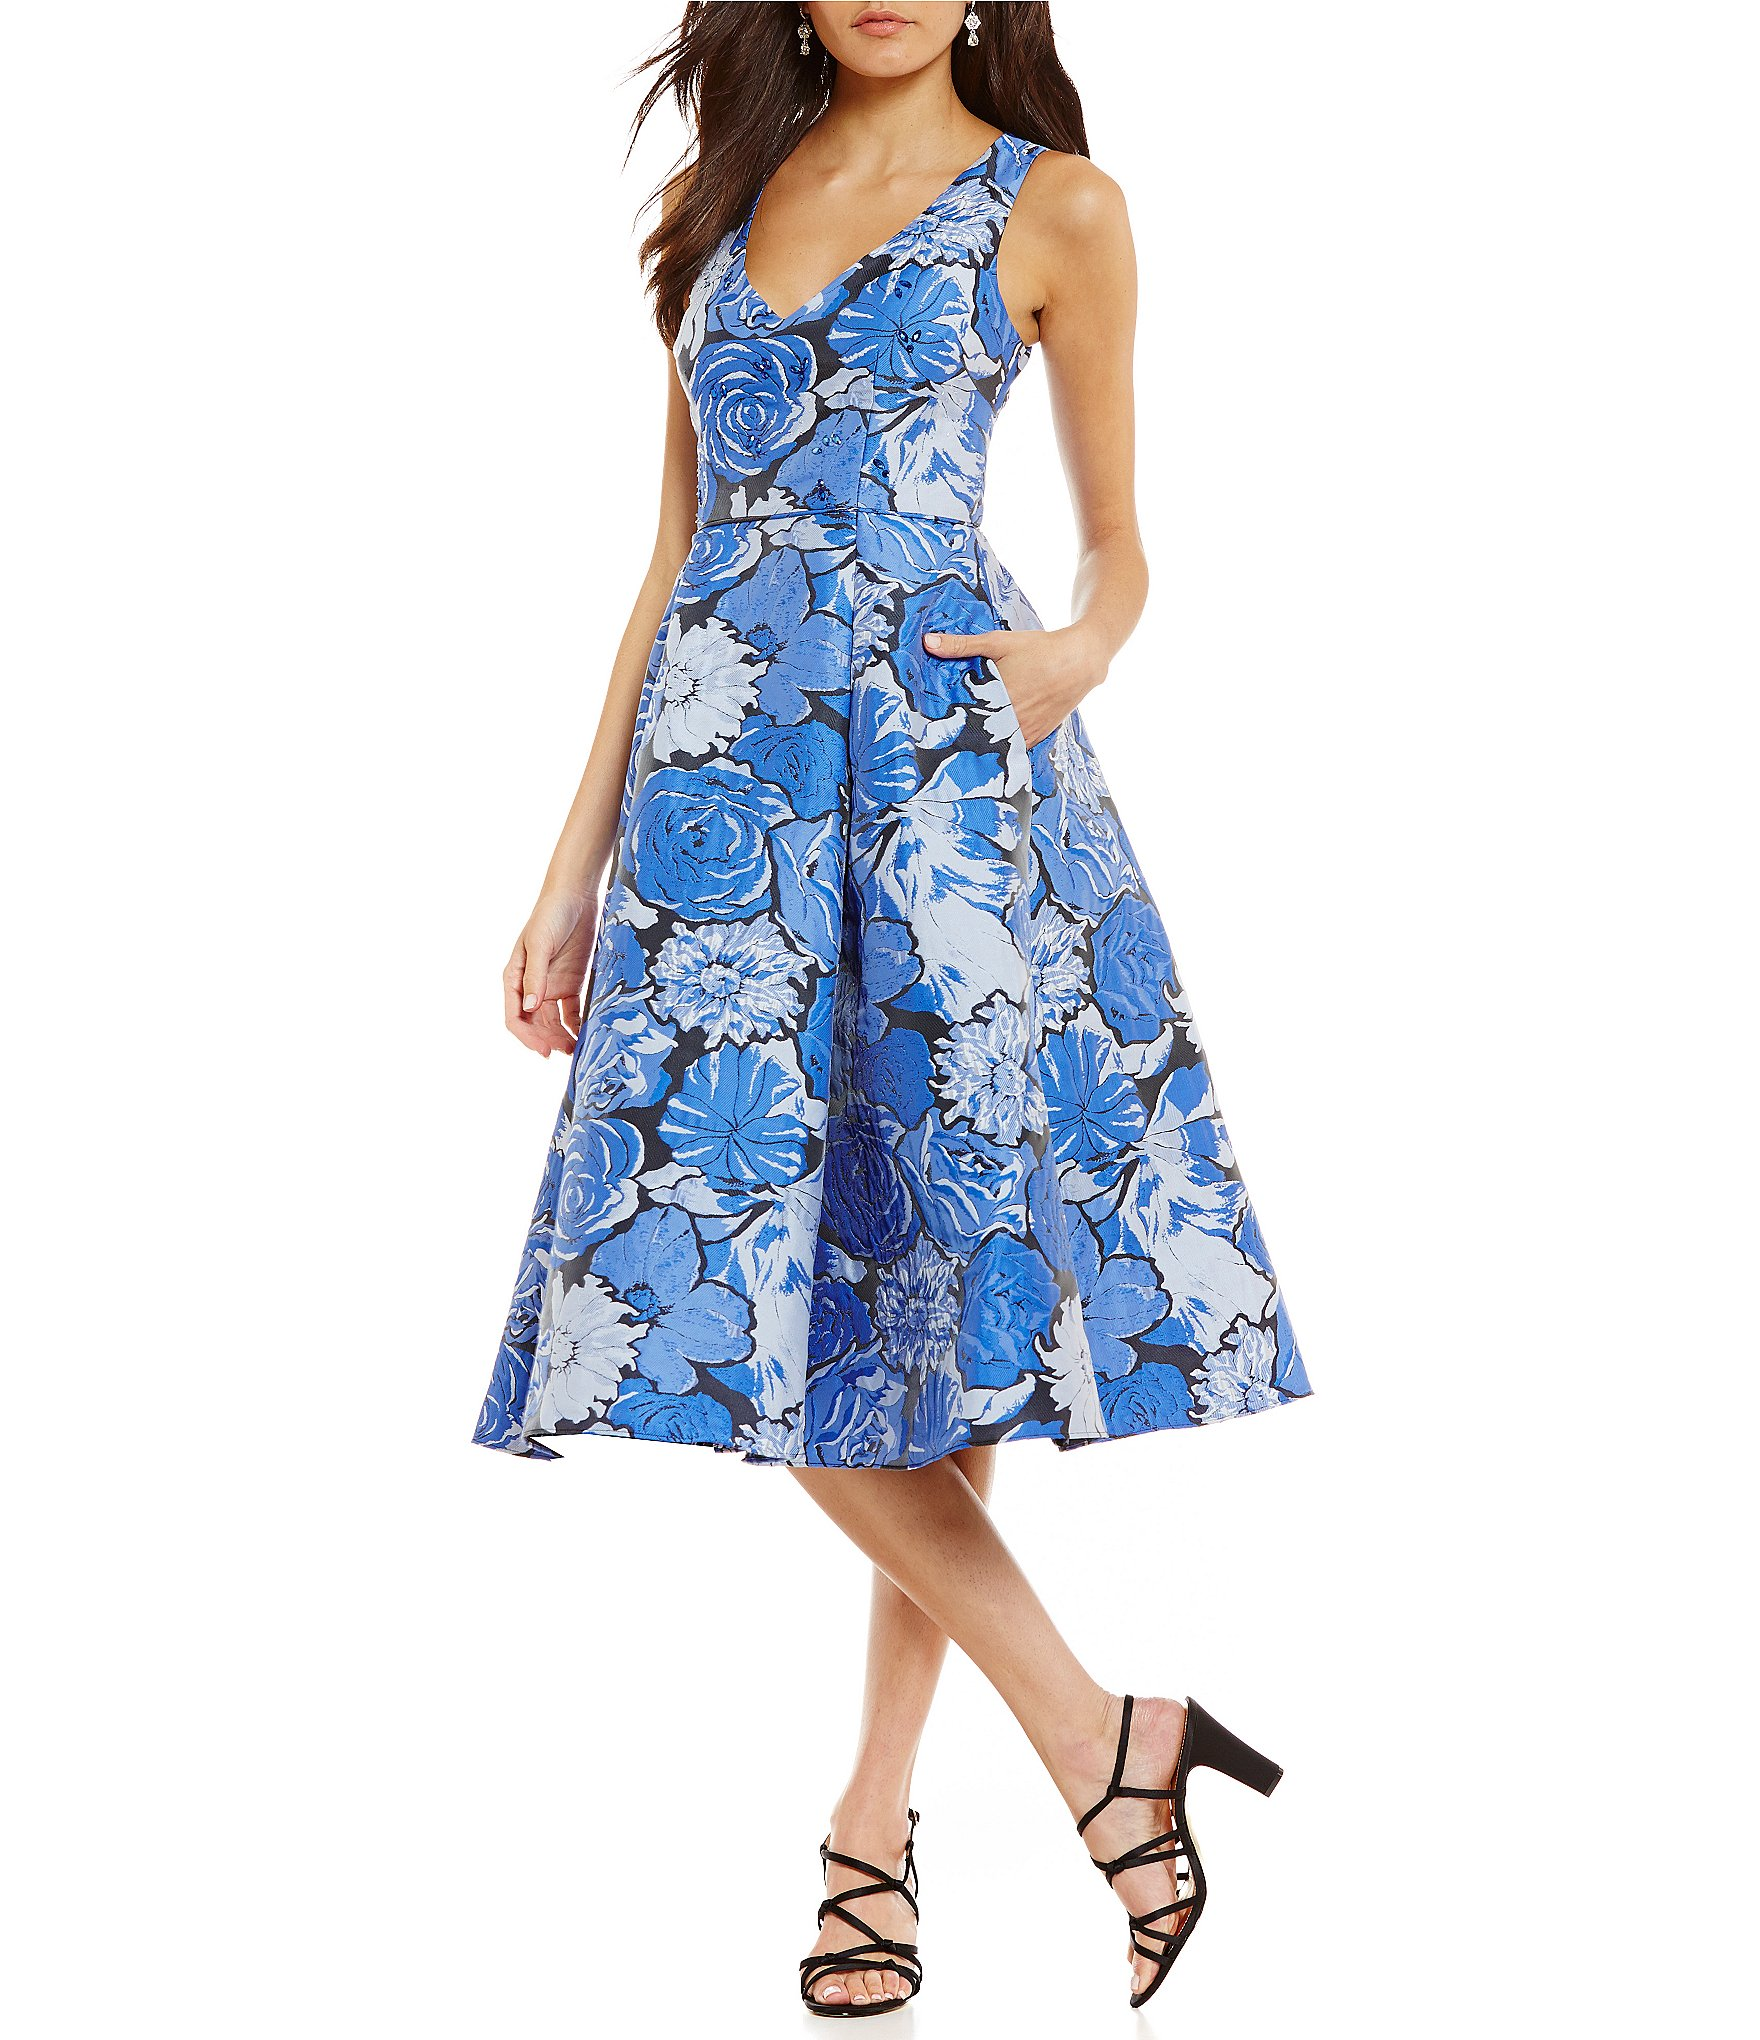 Adrianna Papell Floral Jacquard Fit And Flare Dress Dillards